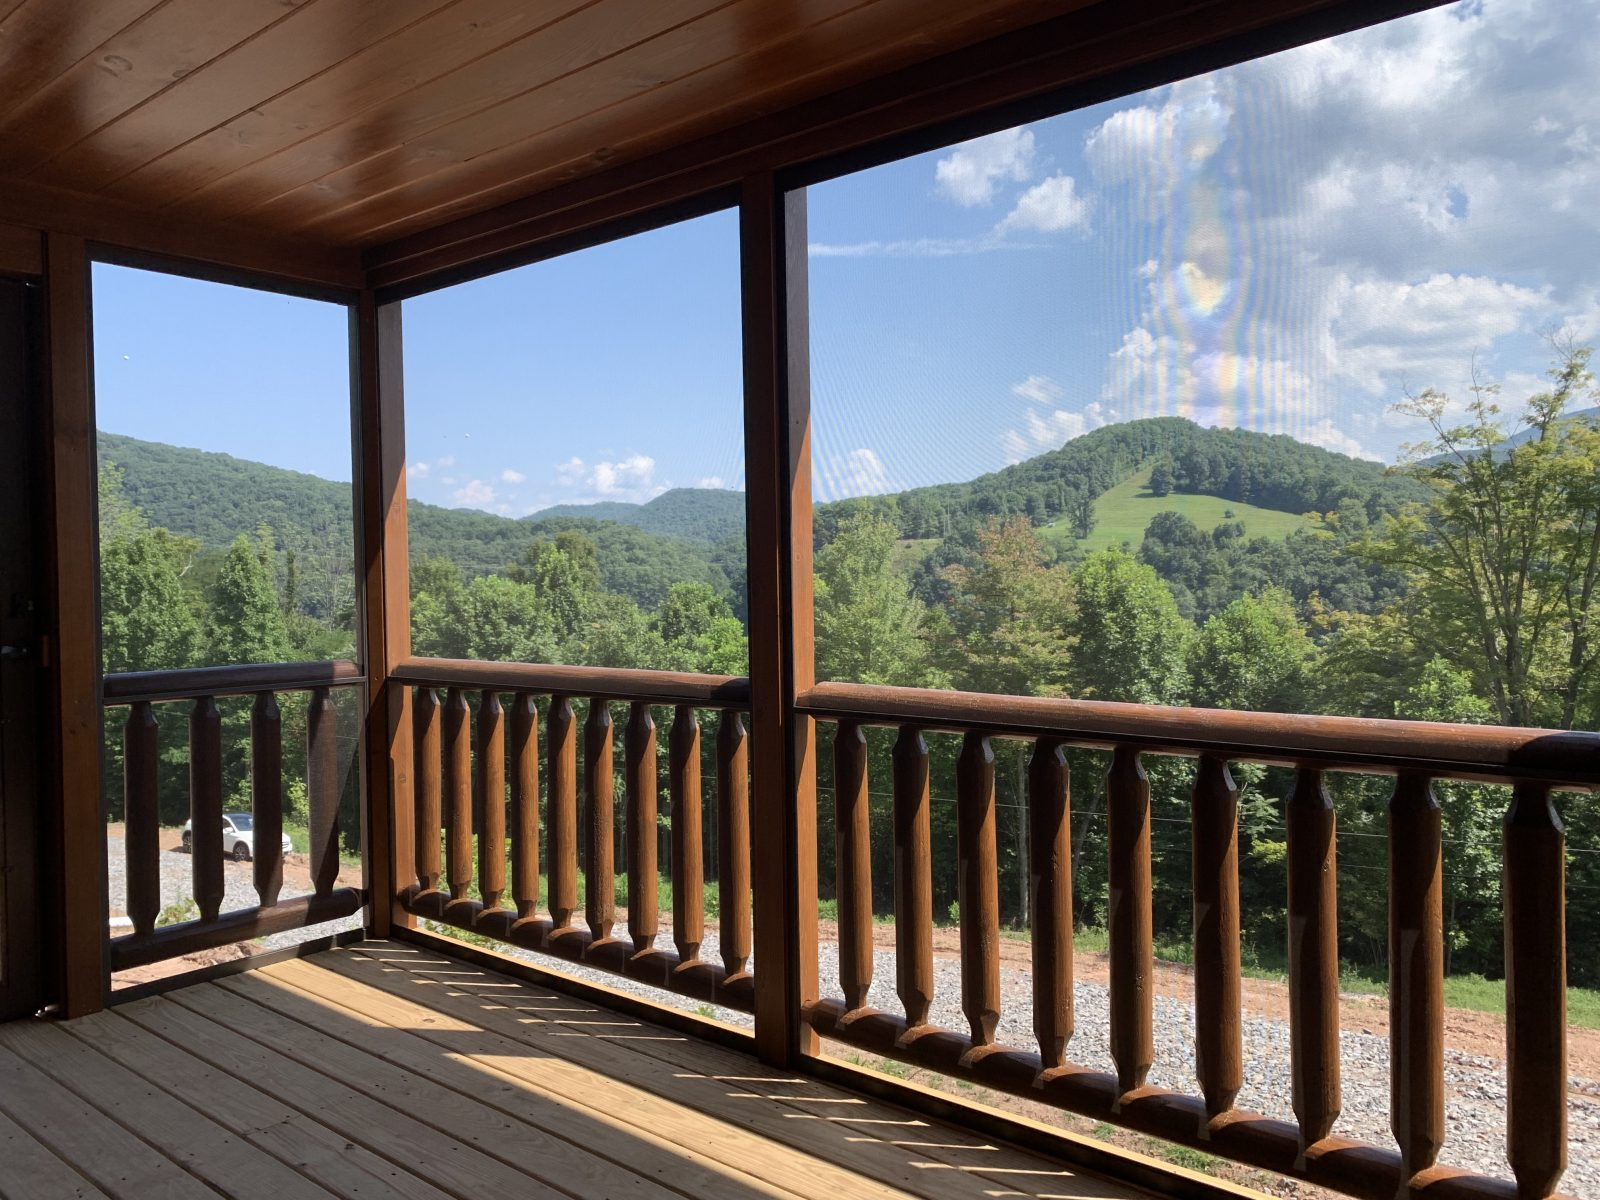 jaw dropping view from the deck of a prefab log cabin overlooking the green moutains of parson west virginia